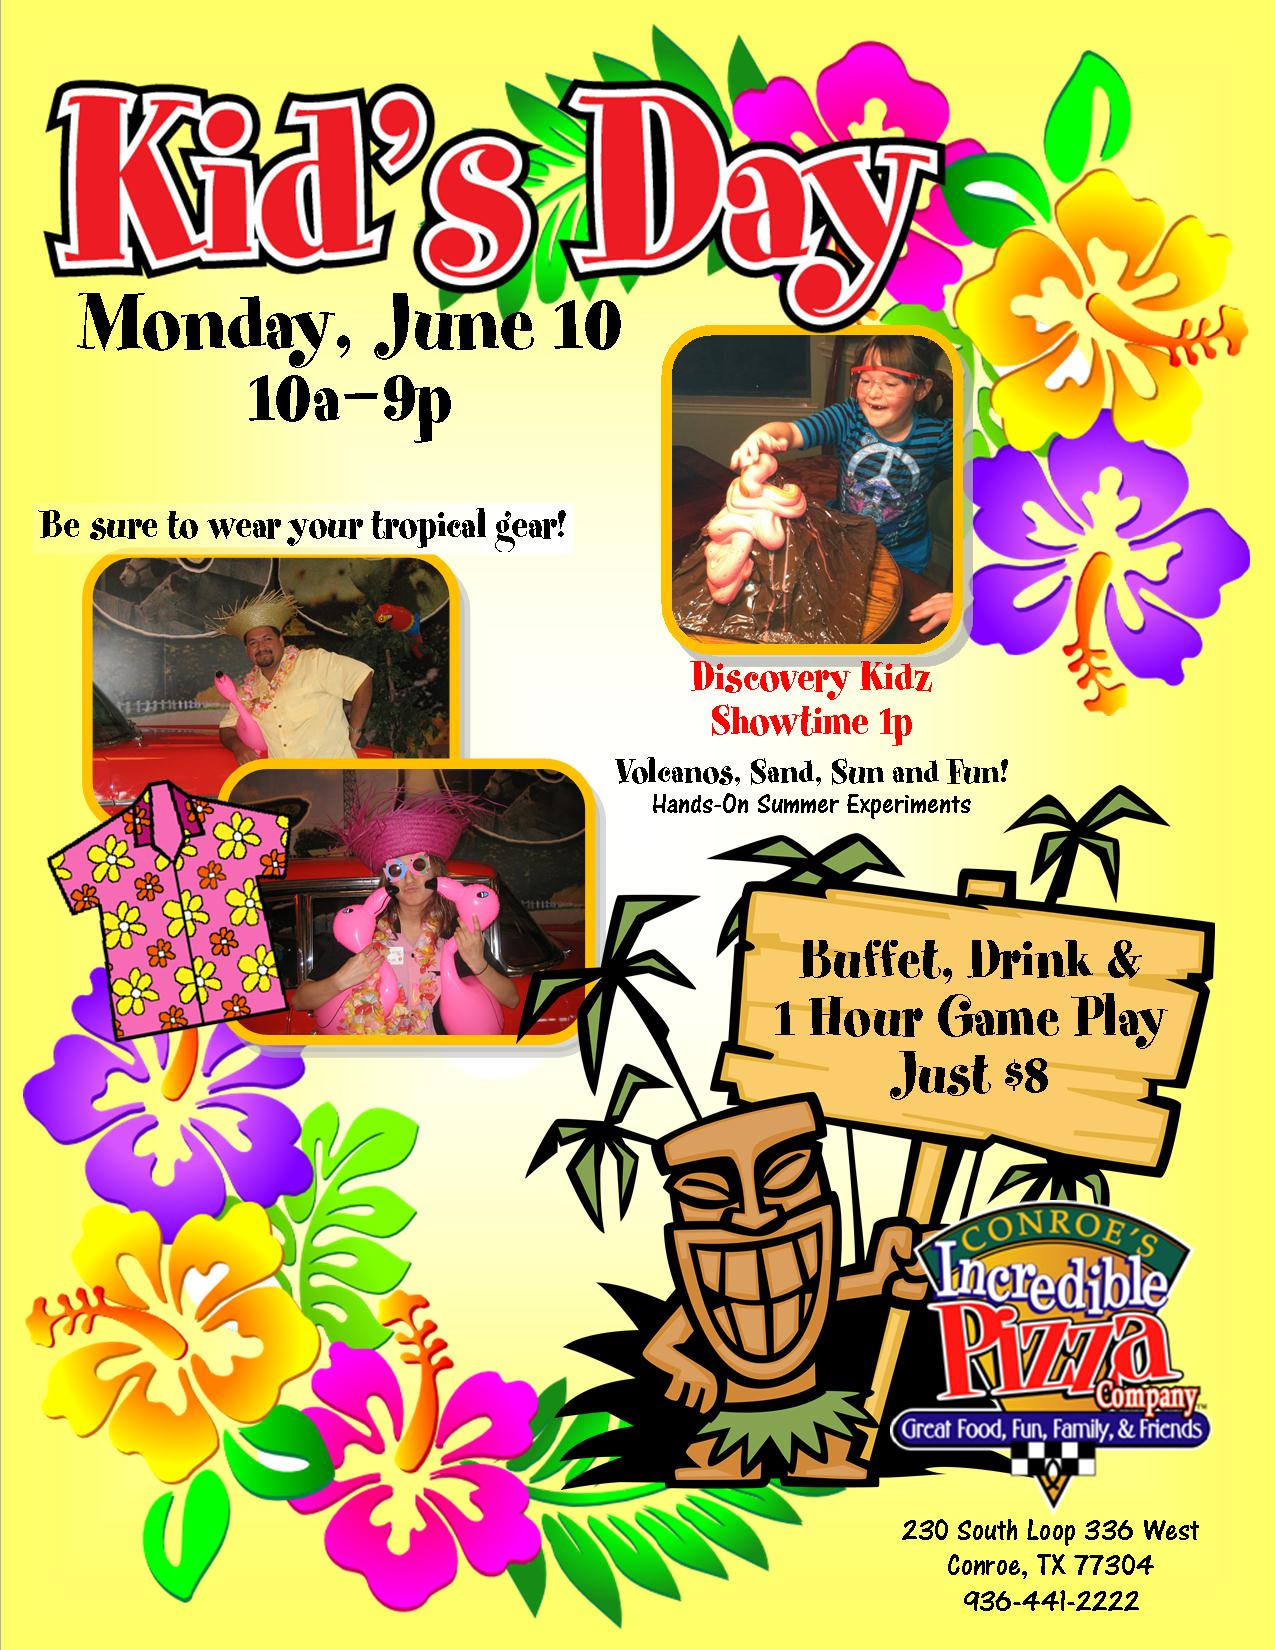 gather the kids and load up the car for a fun day at conroes incredible pizza were kicking off the summer with our annual luau party